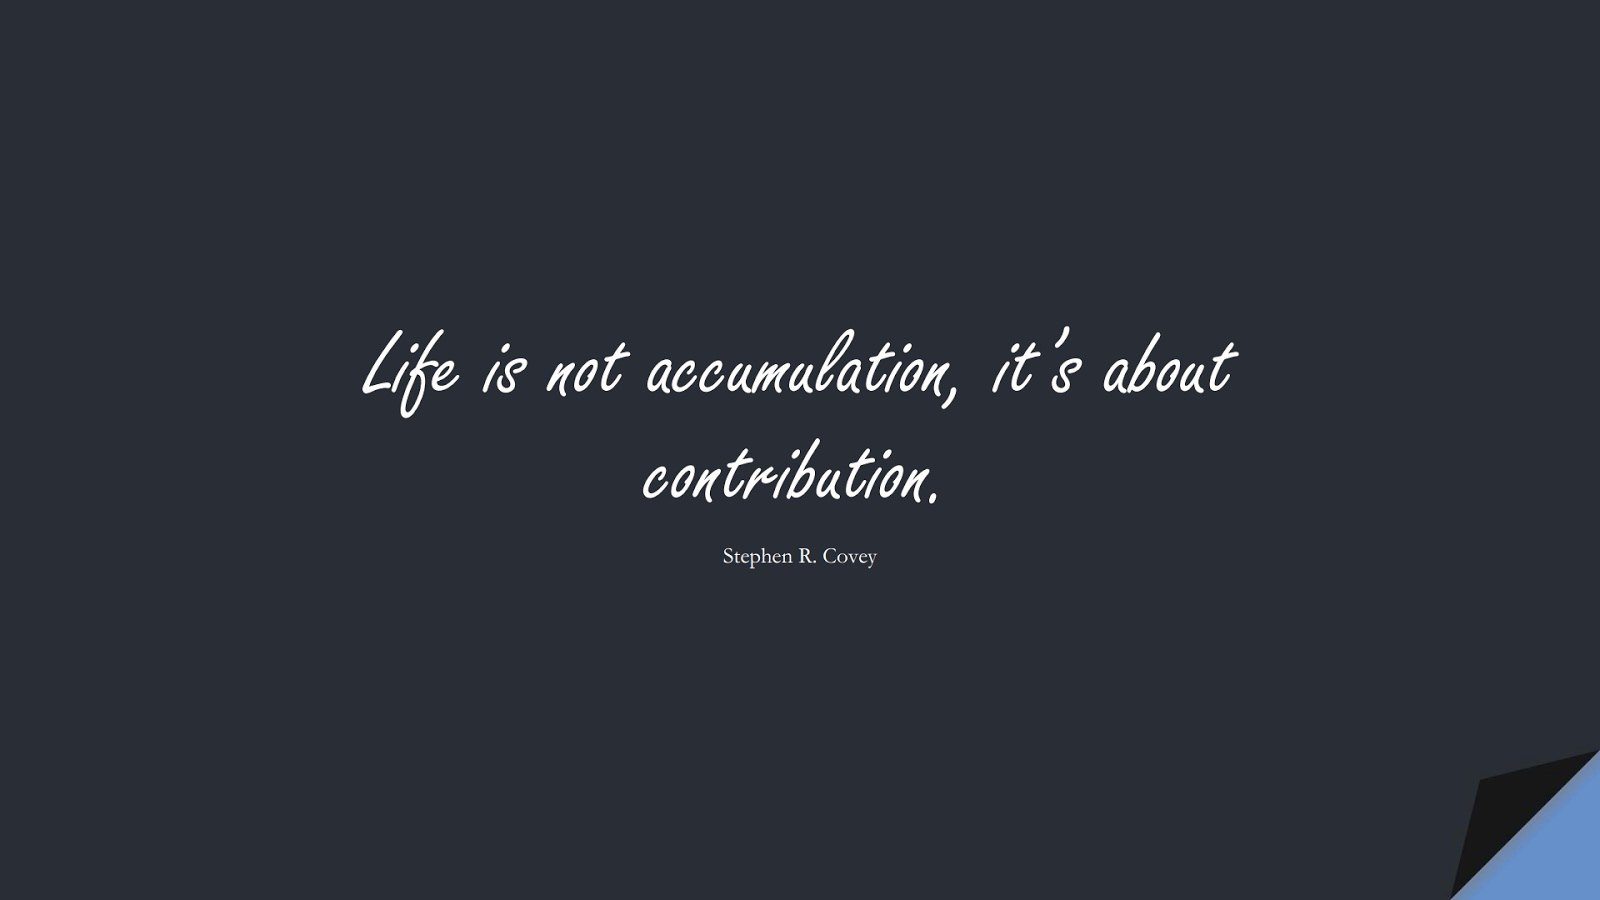 Life is not accumulation, it's about contribution. (Stephen R. Covey);  #PositiveQuotes